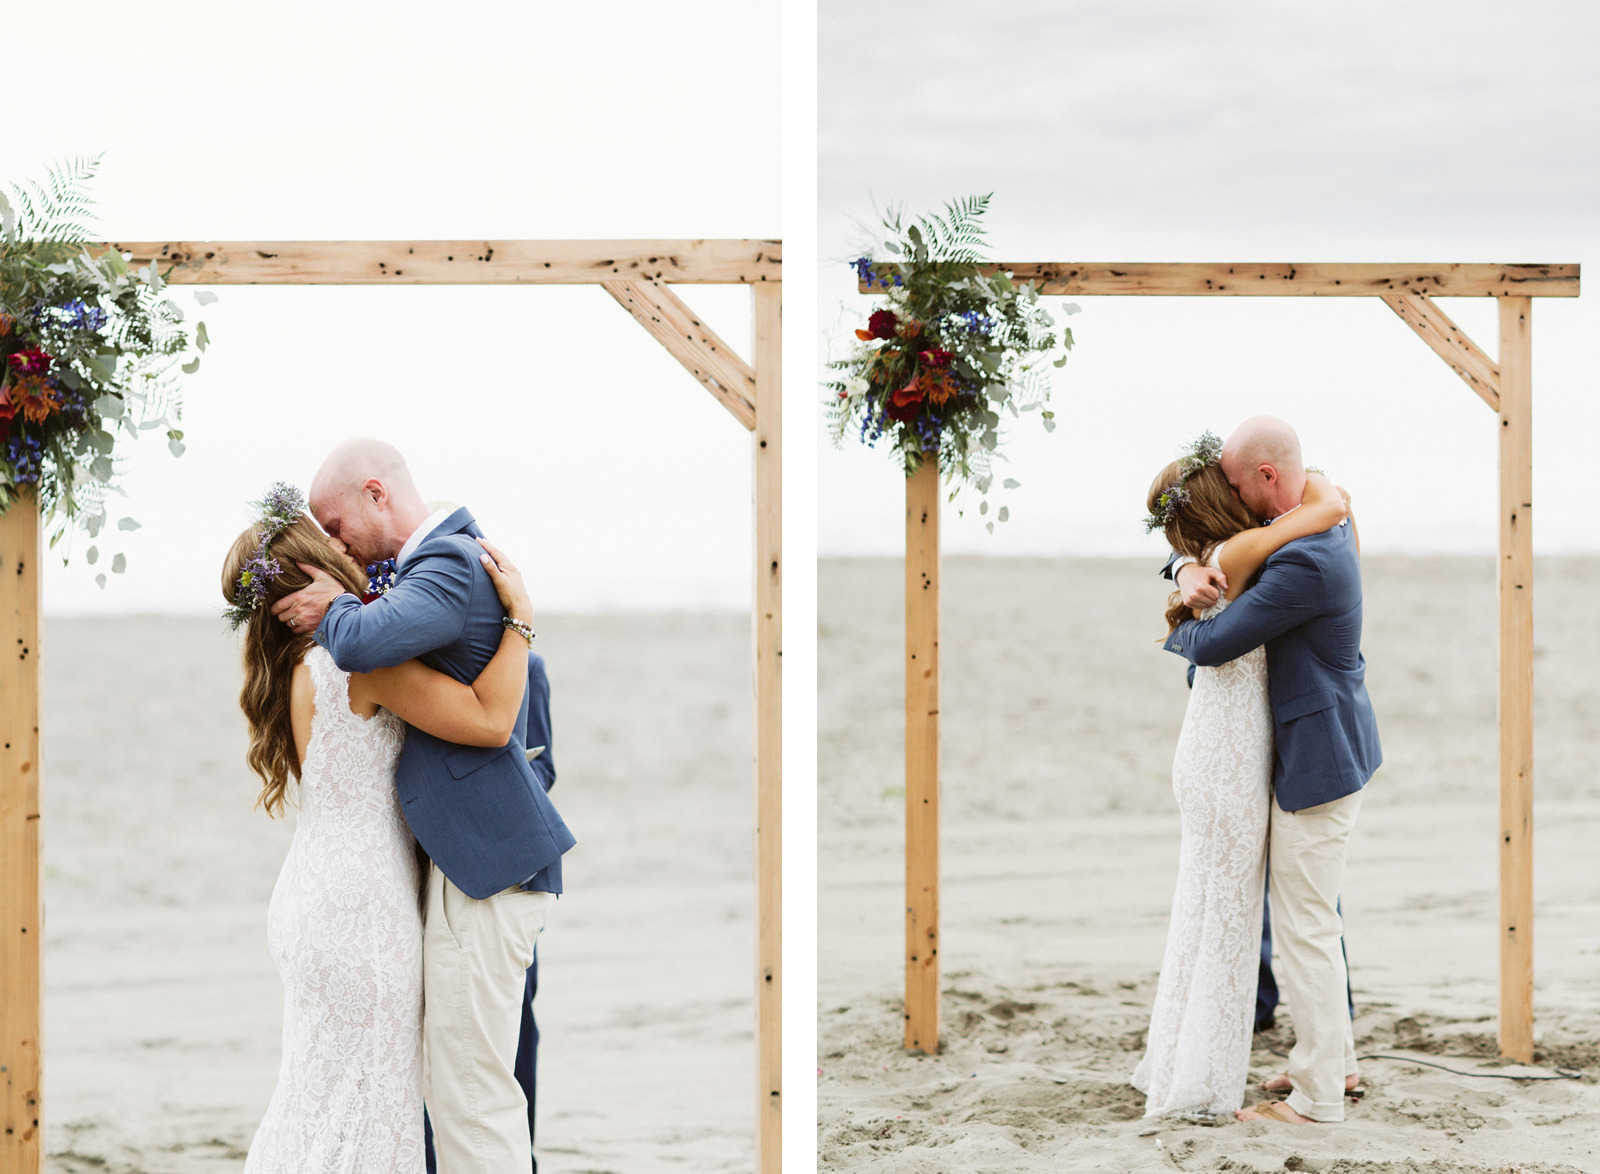 christinajerry-blog-25 NEAH BAY WEDDING